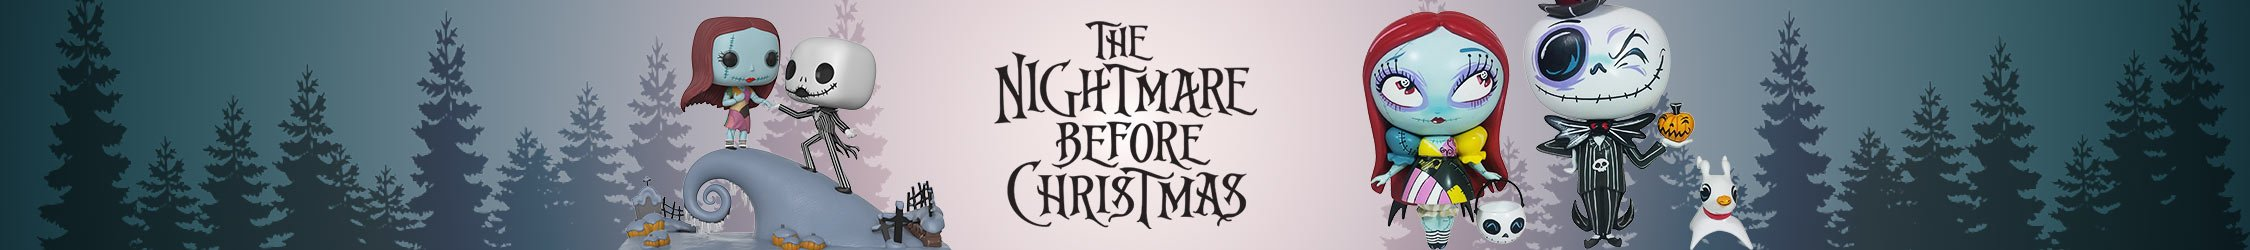 Nightmare Before Chrsitmas